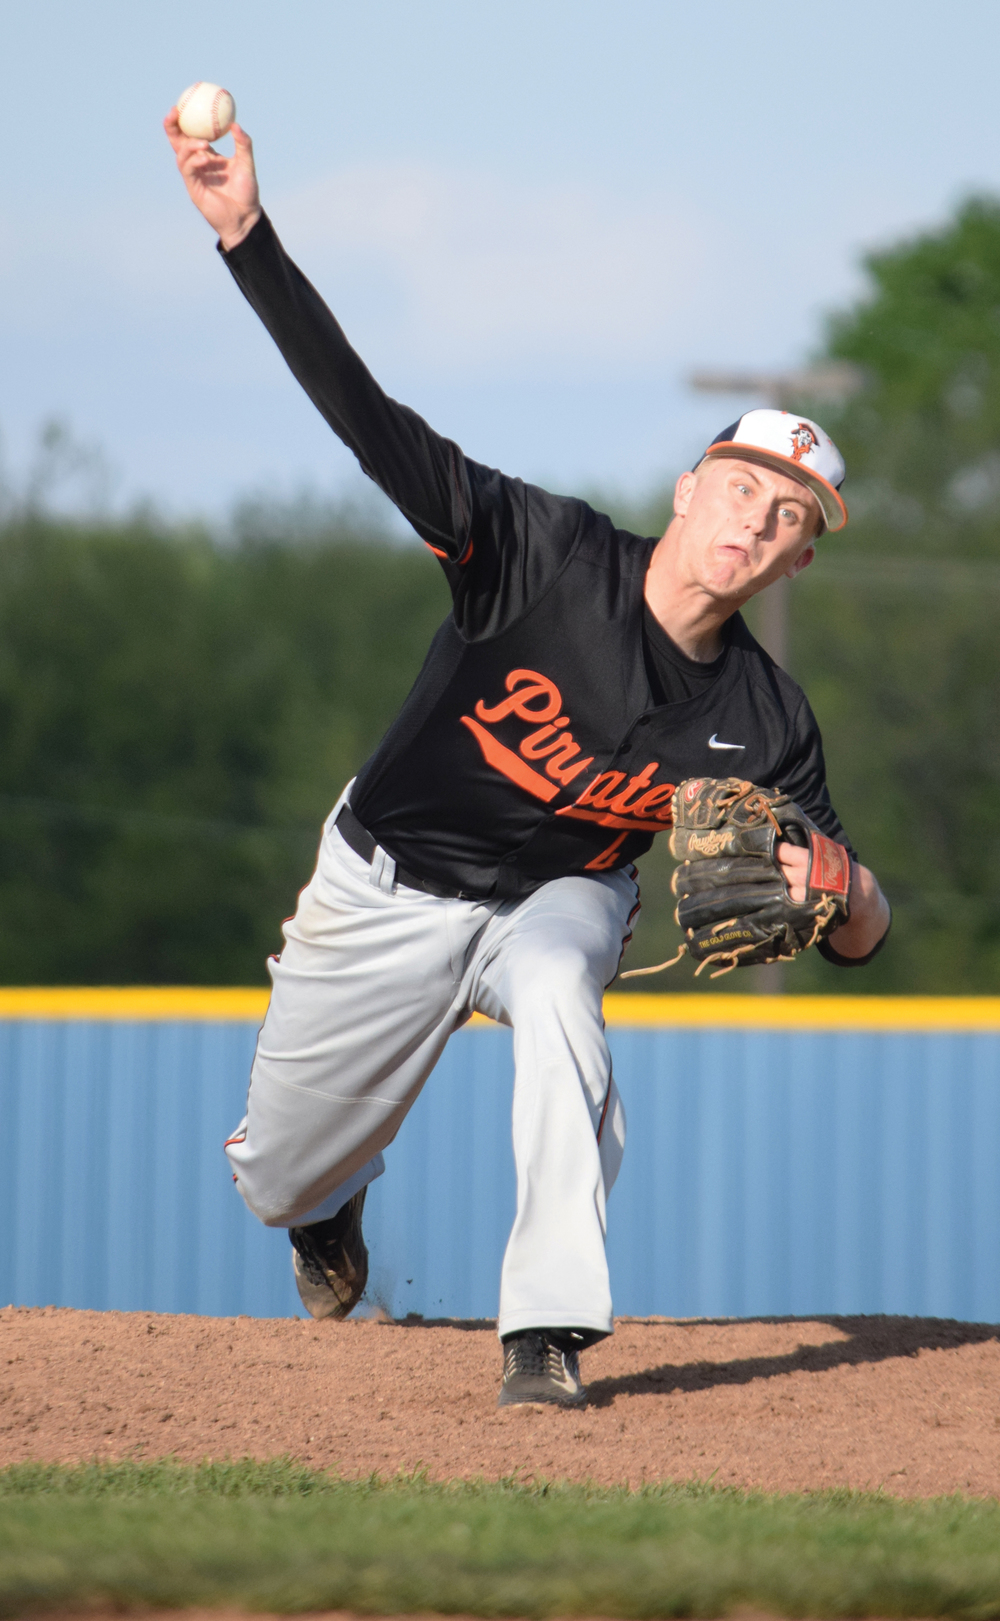 BRYCE MERENESS/Citizen photo Platte County junior Jared Wilson delivers a pitch against Liberty in the semifinals of the Northland Invitational on Friday, April 22 at Liberty High School in Liberty, Mo.